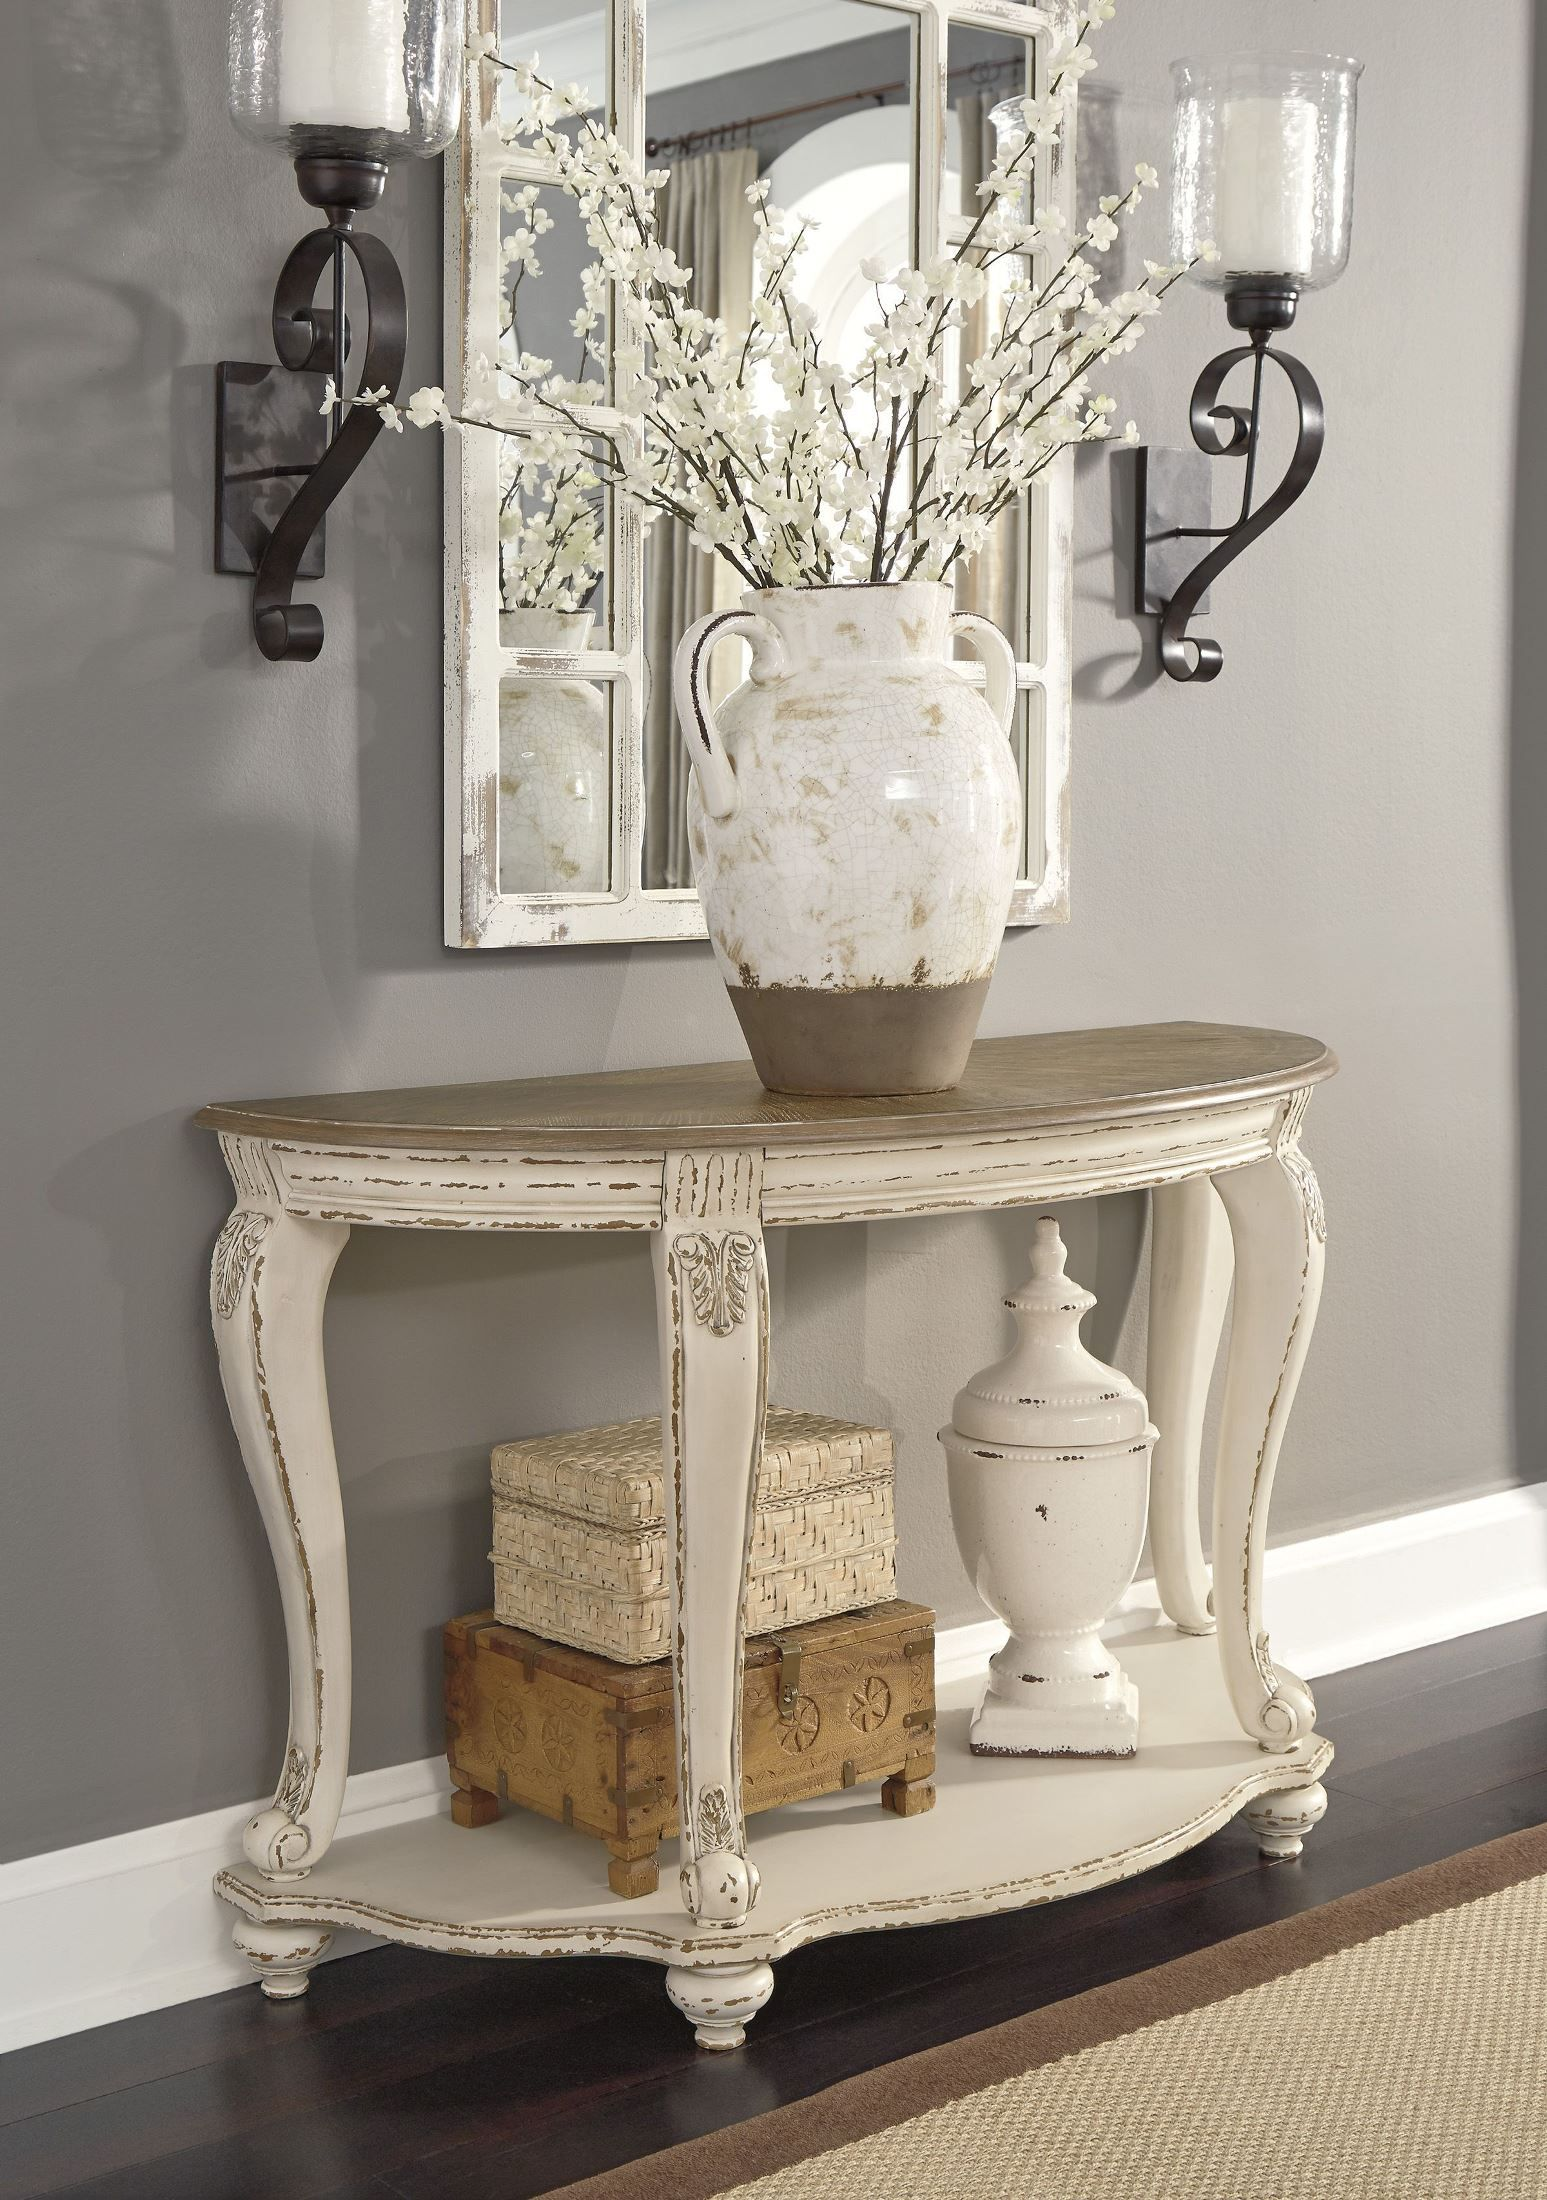 Realyn White and Brown Sofa Table in 2020 Sofa table